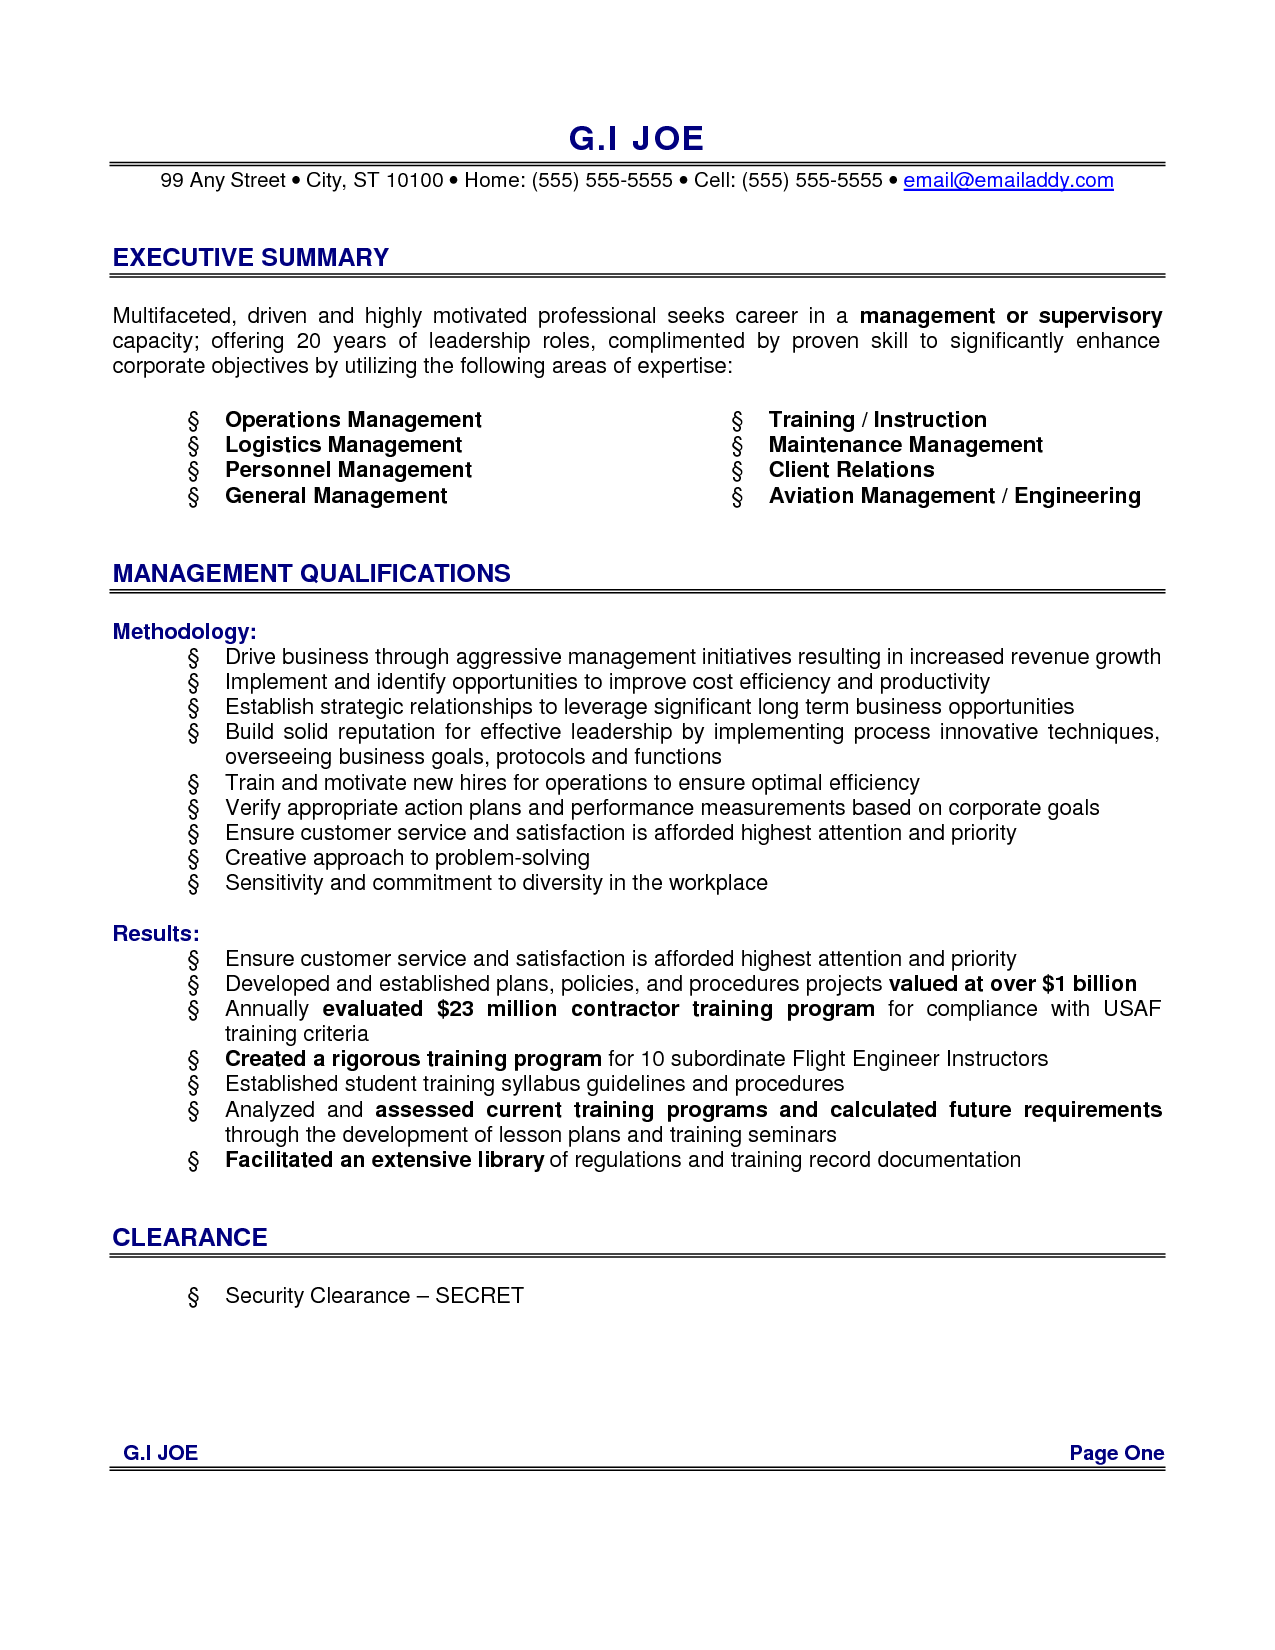 ResumeExamples For Executive Summary With Management Qualifications